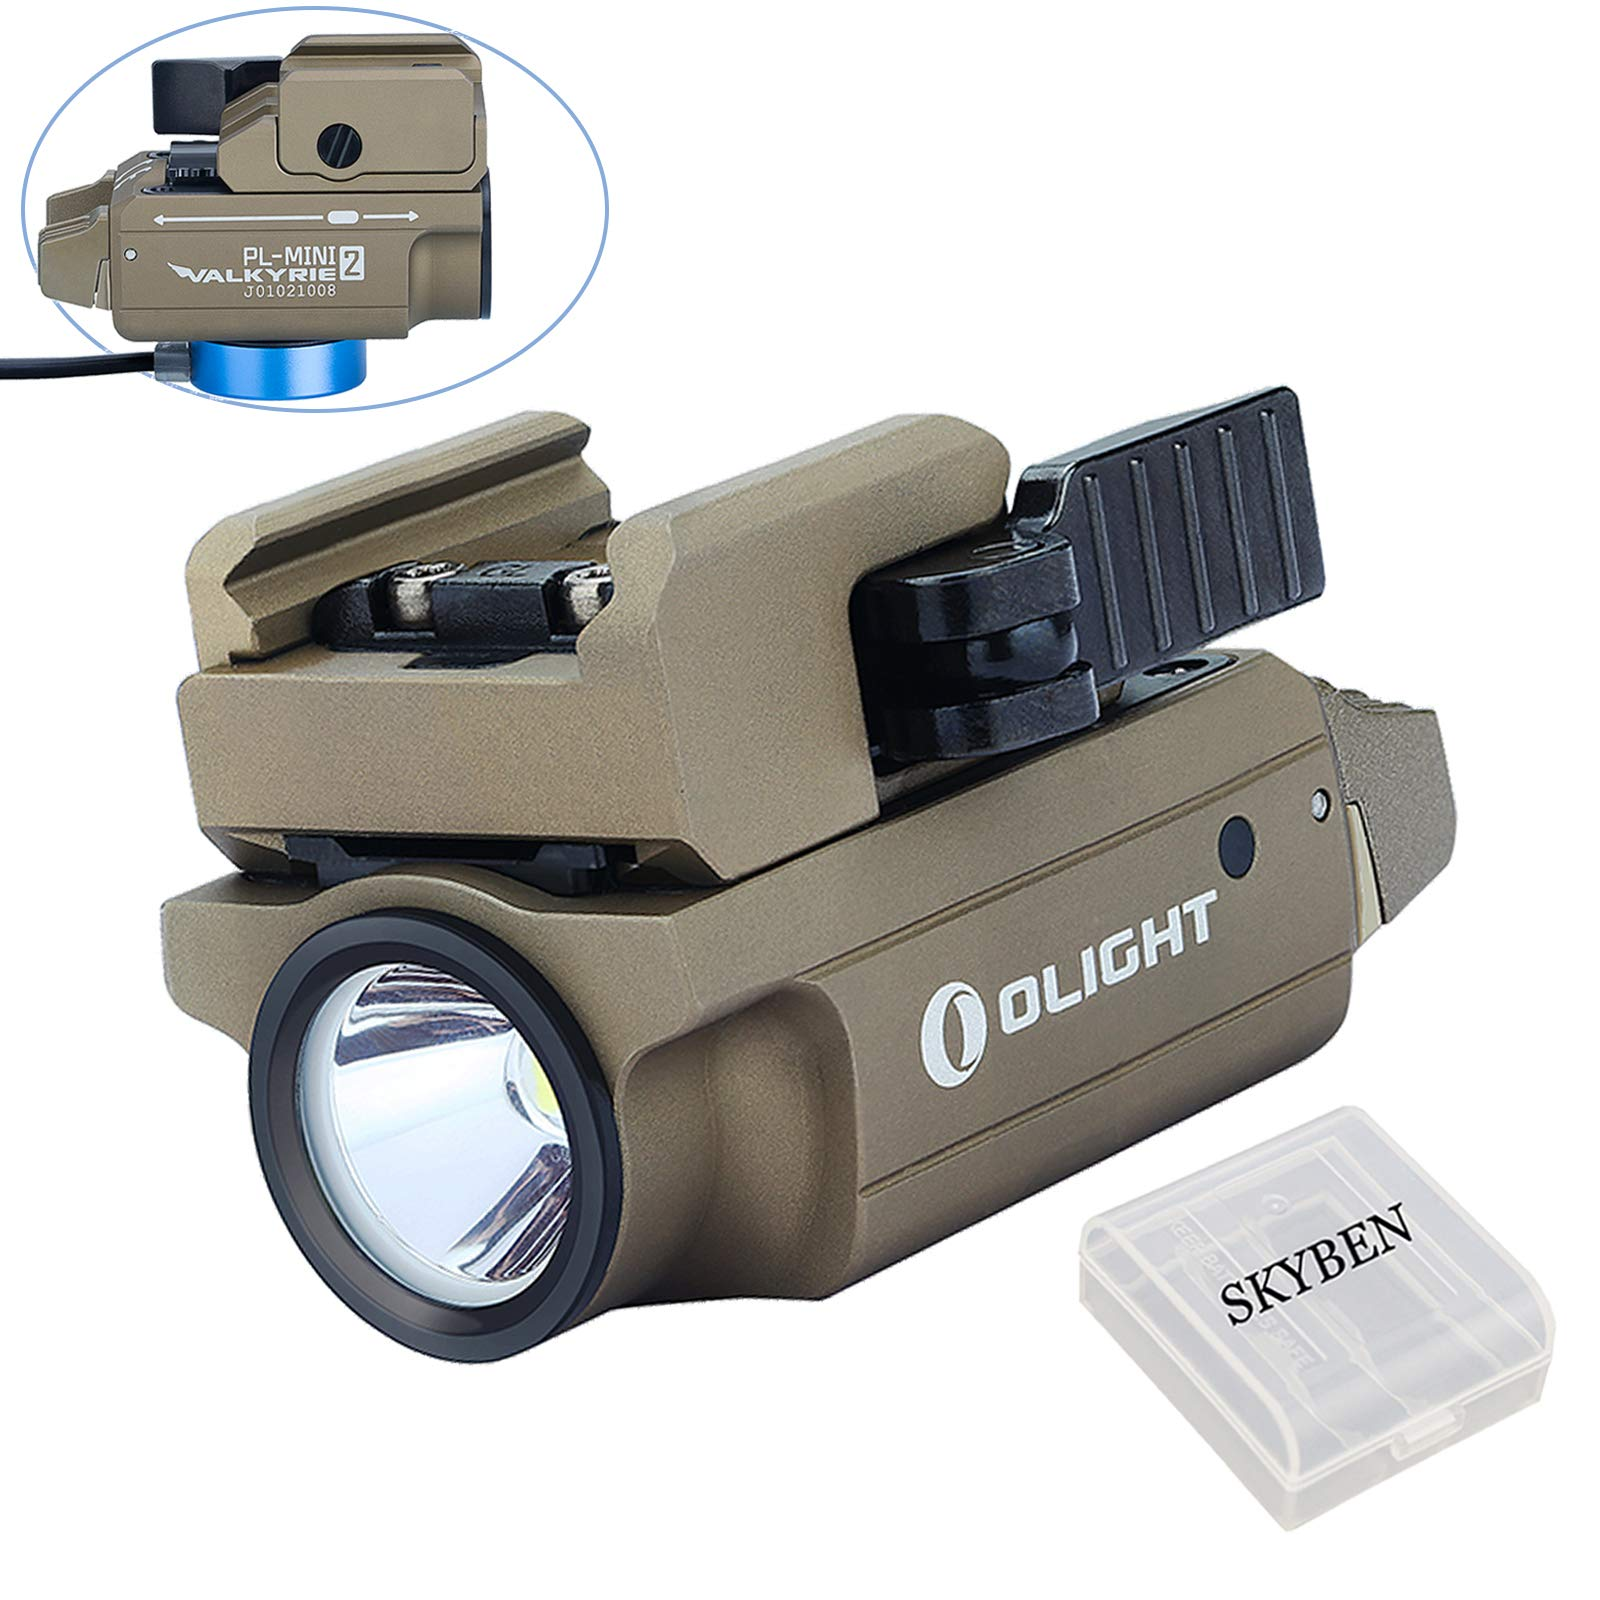 Olight PL-MINI 2 Valkyrie 600 Lumens Cree XP-L HD CW LED Modular Weaponlight Magnetic Rechargeable with Adjustable Rail,Powered by a Built-in Polymer Battery, with SKYBEN Battery Case(Desert Tan) by OLIGHT